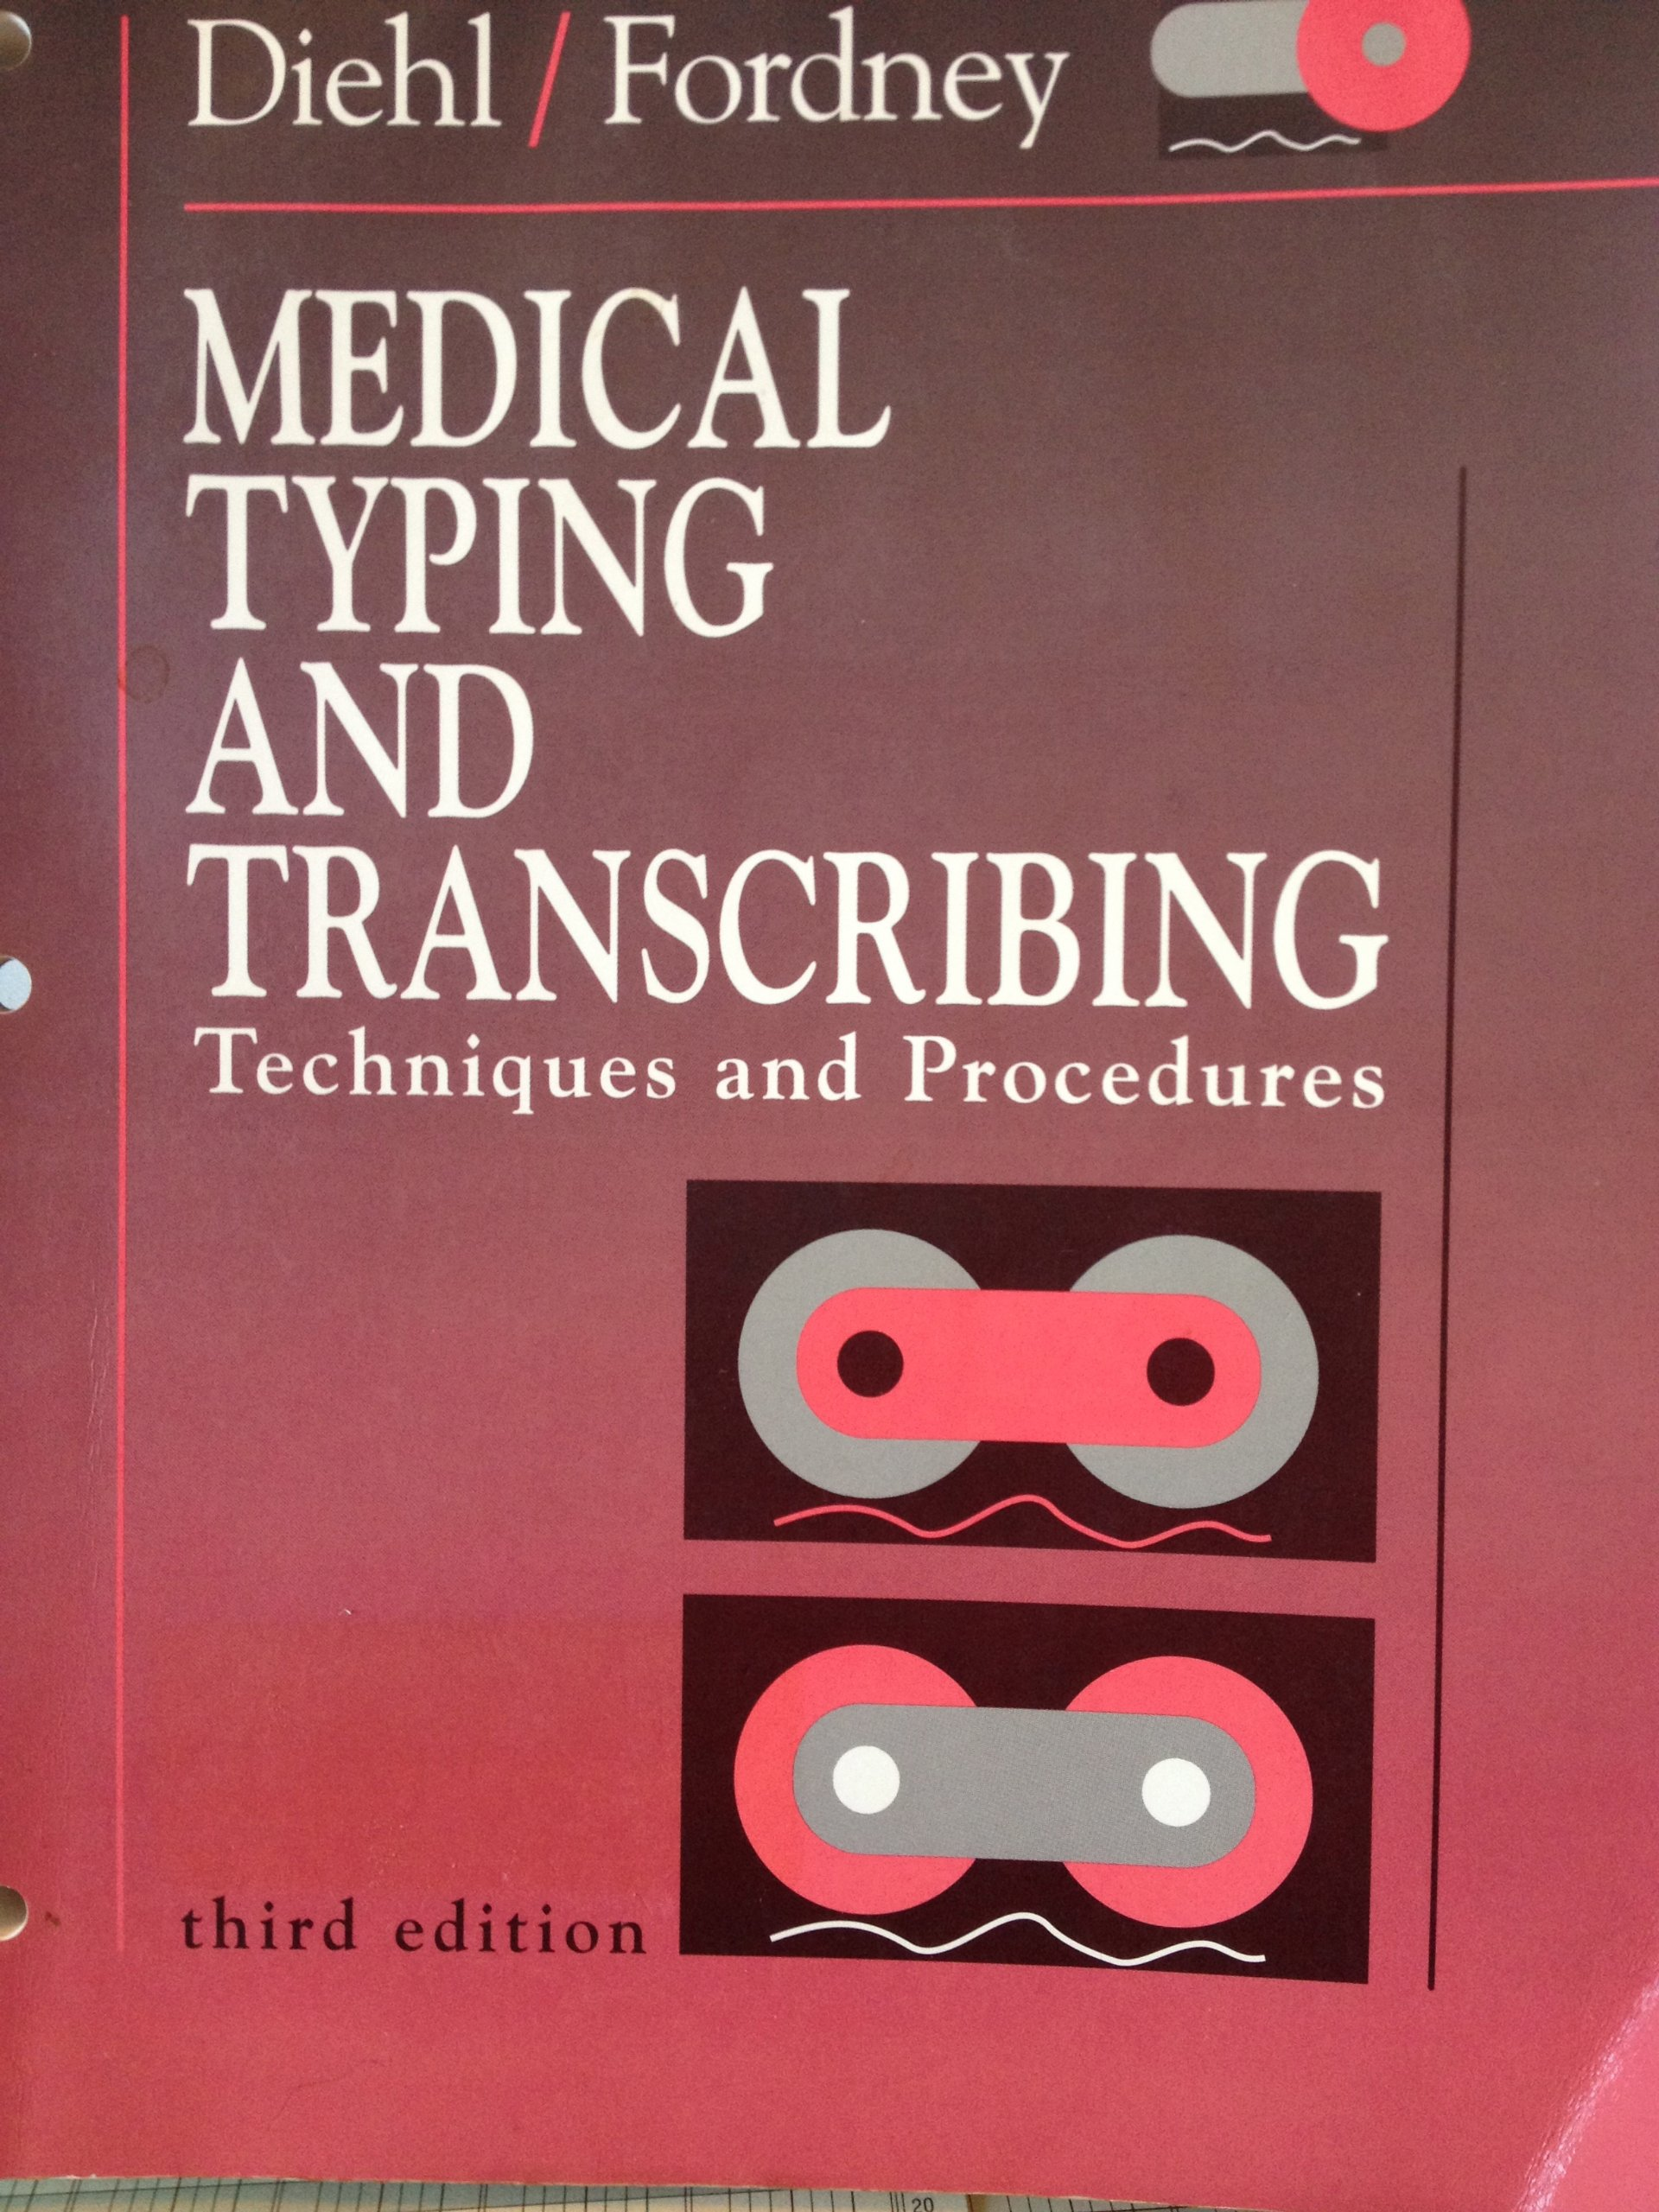 Medical Typing and Transcribing Techniques and Procedures 3rd Edition